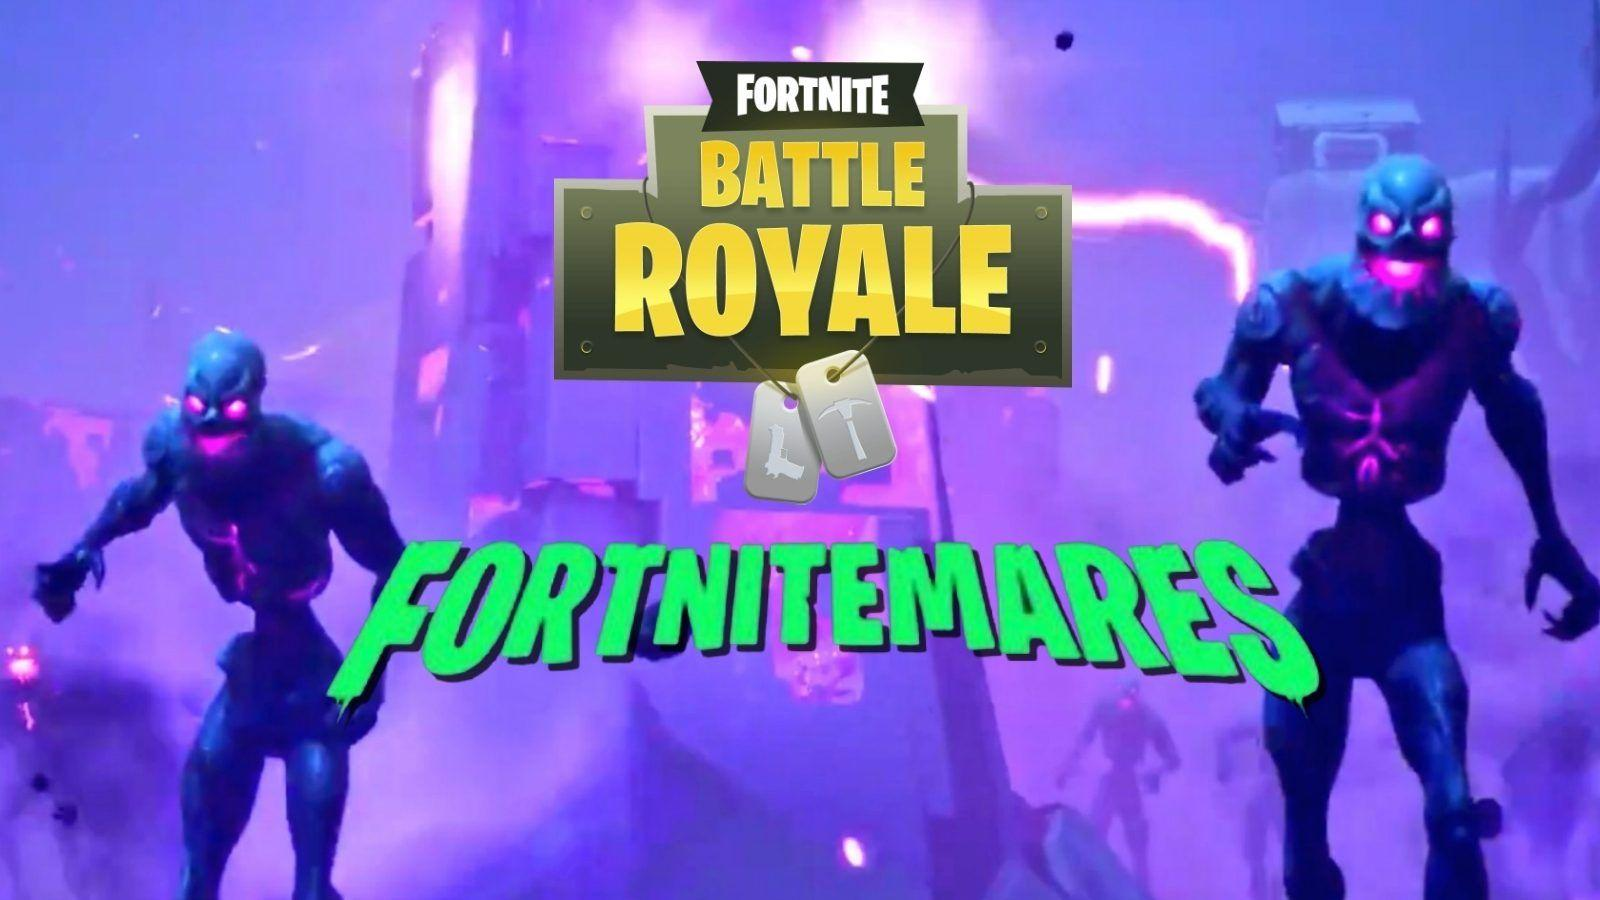 Cube unleashes Zombies in Fortnite Battle Royale called 'Cube